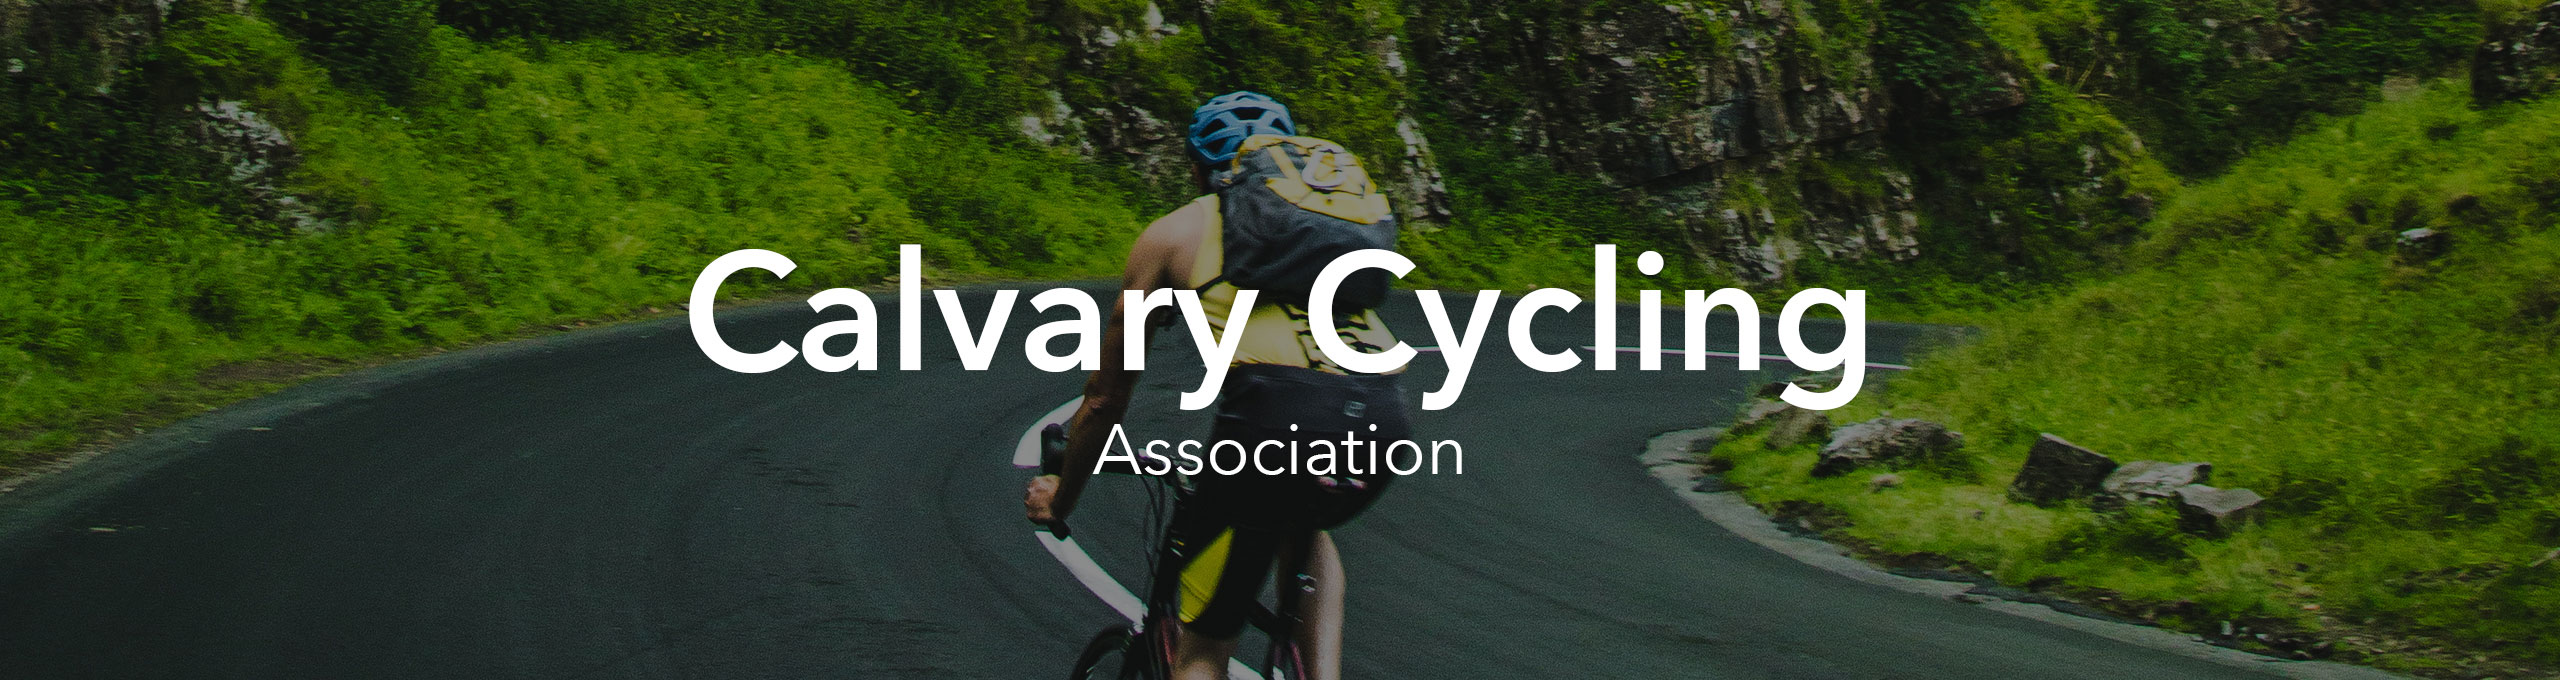 Calvary Cycling Association